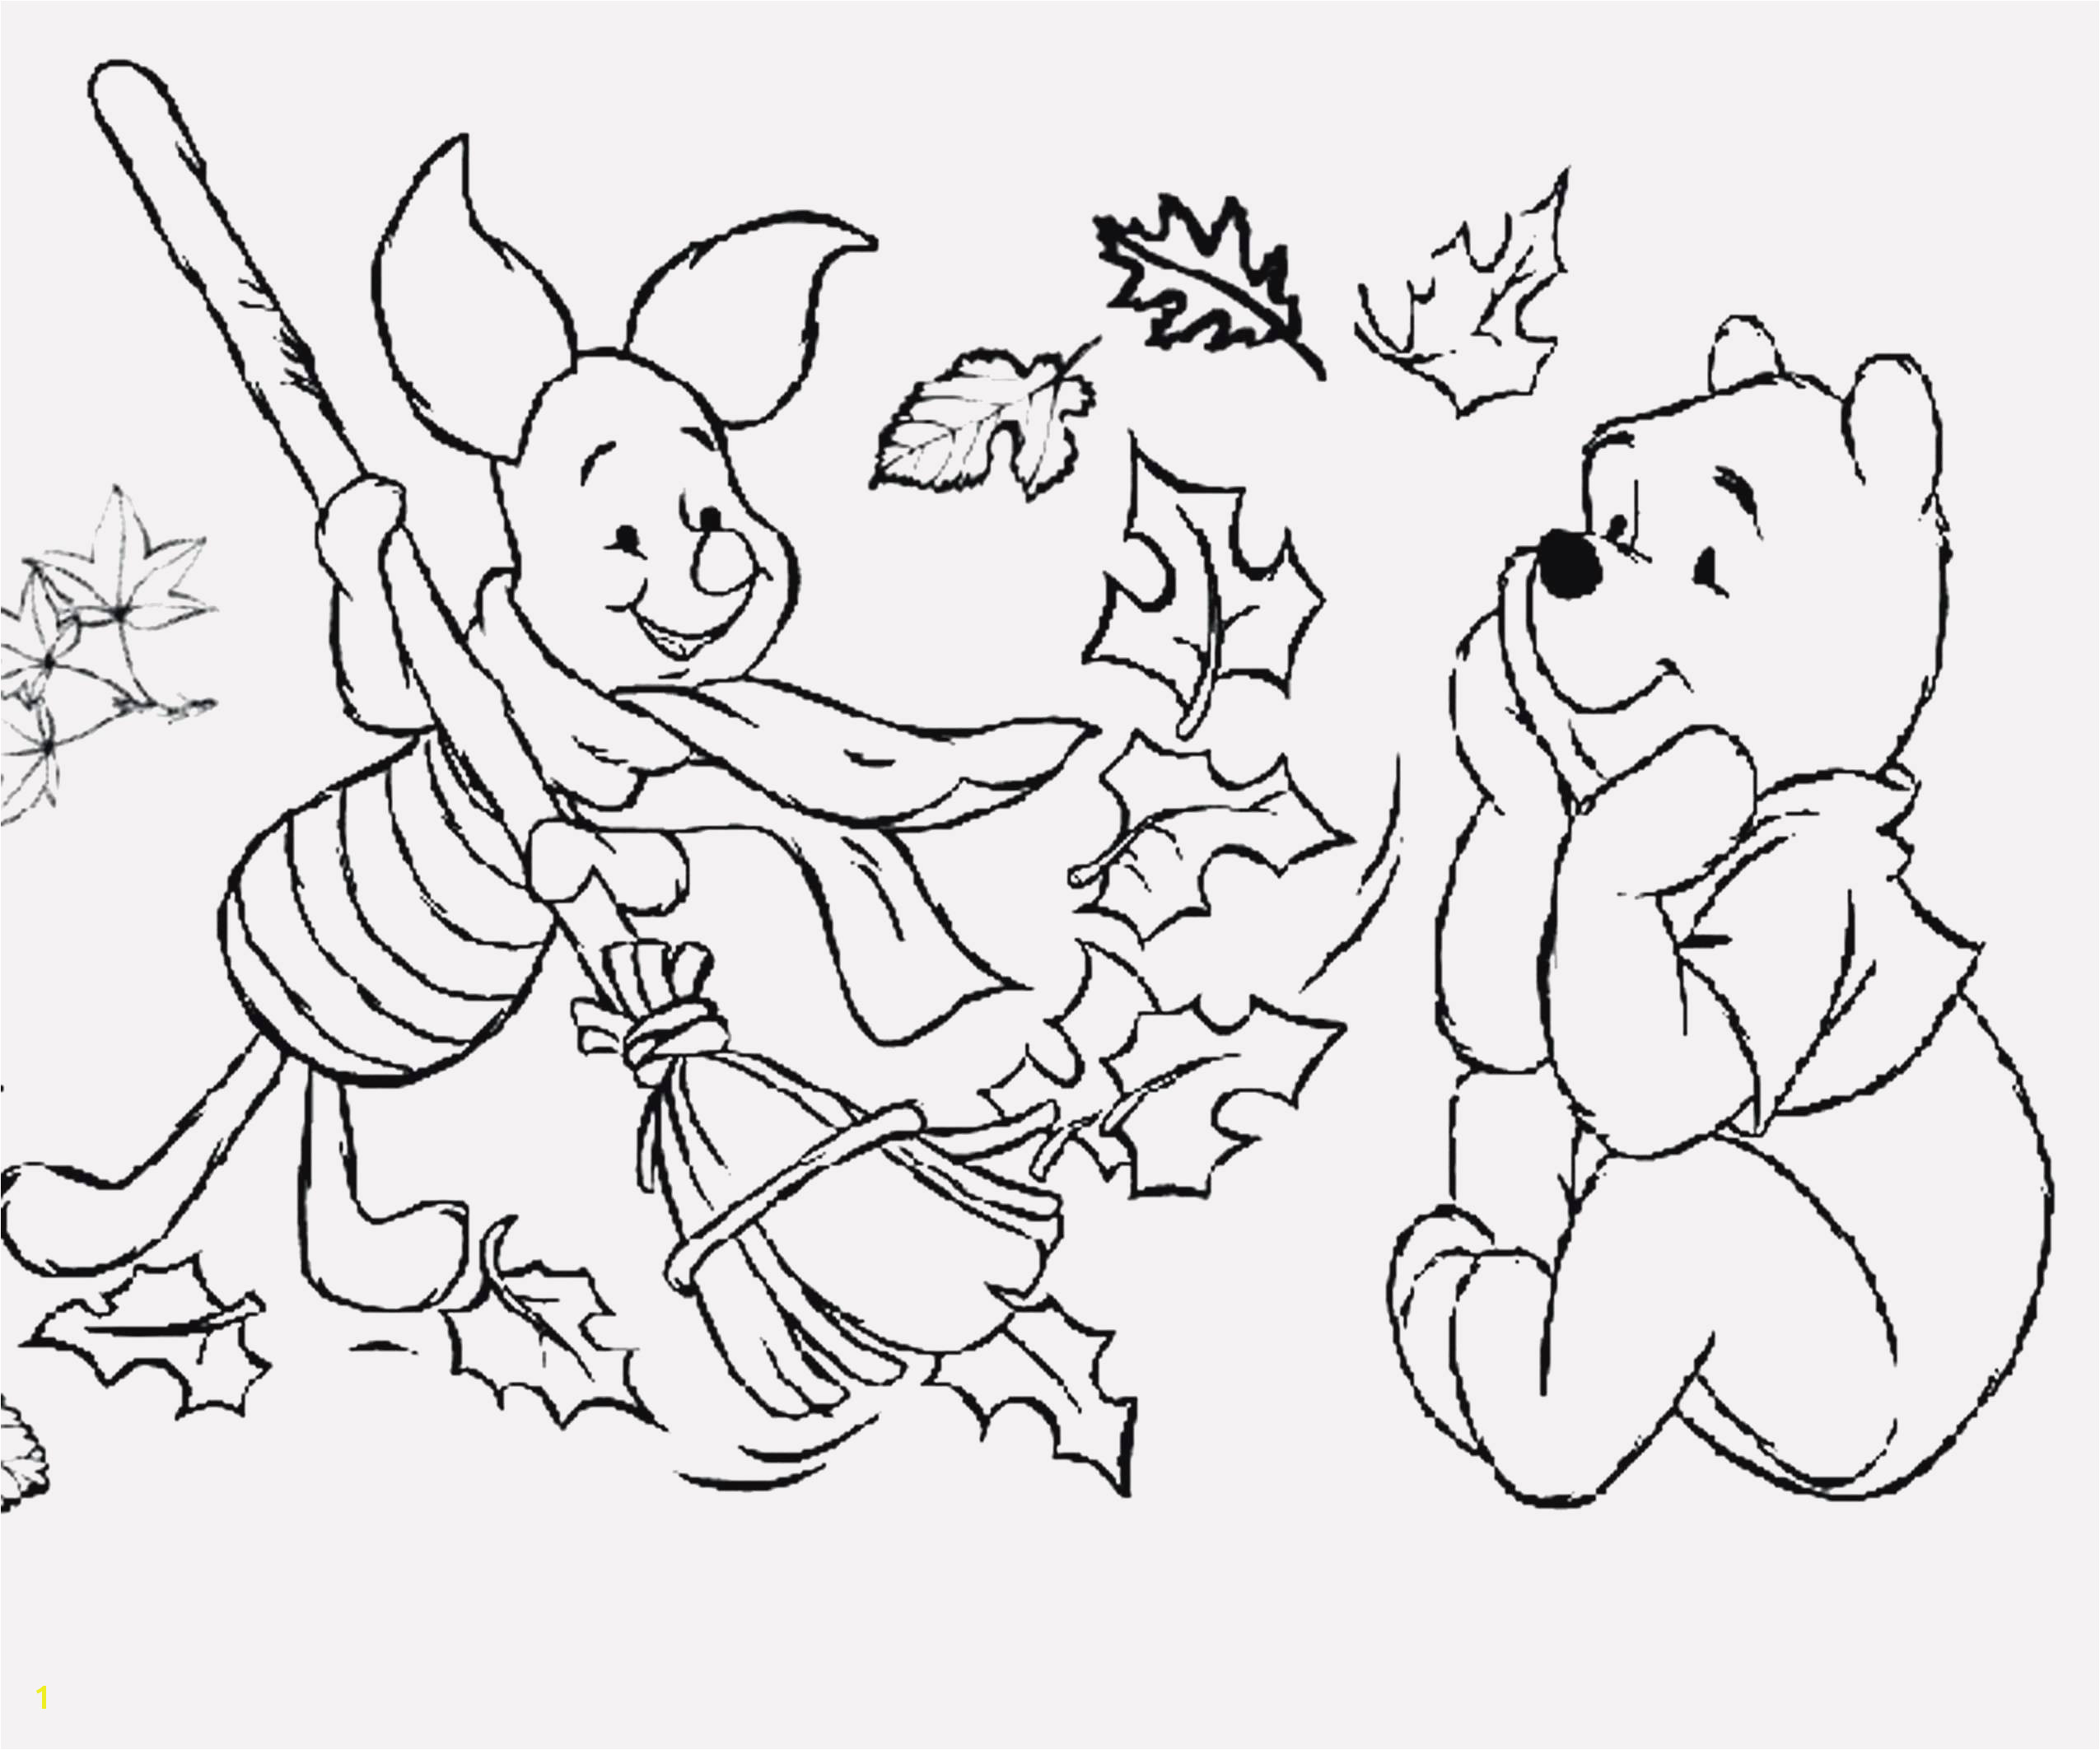 Boys Coloring Pages 0d Coloring Page Fall Coloring Pages for Kids Inspirational Coloring Pages Kidsboys Winnie the Pooh Christmas